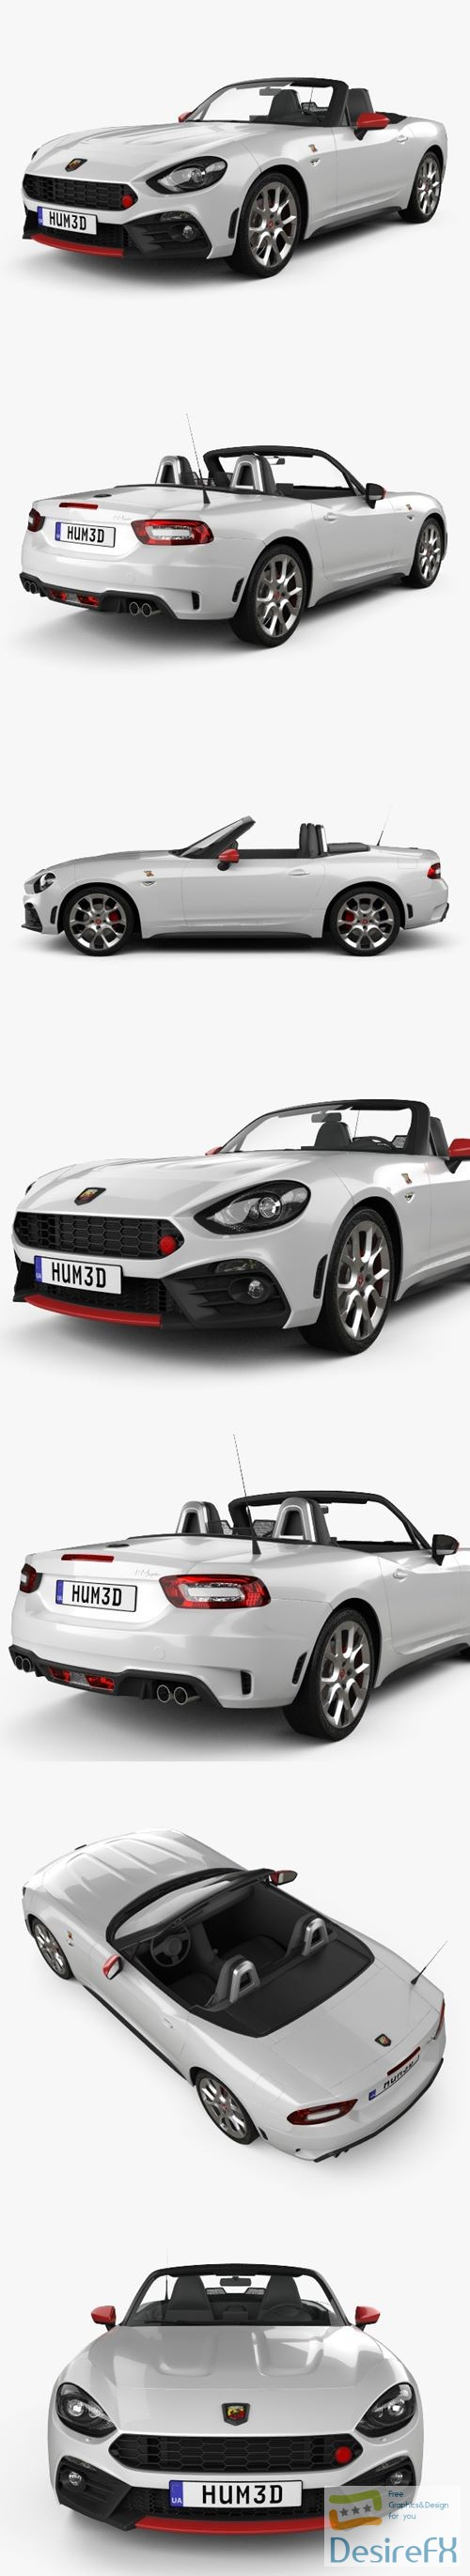 3d-models - Fiat 124 Spider Abarth 2017 3D Model